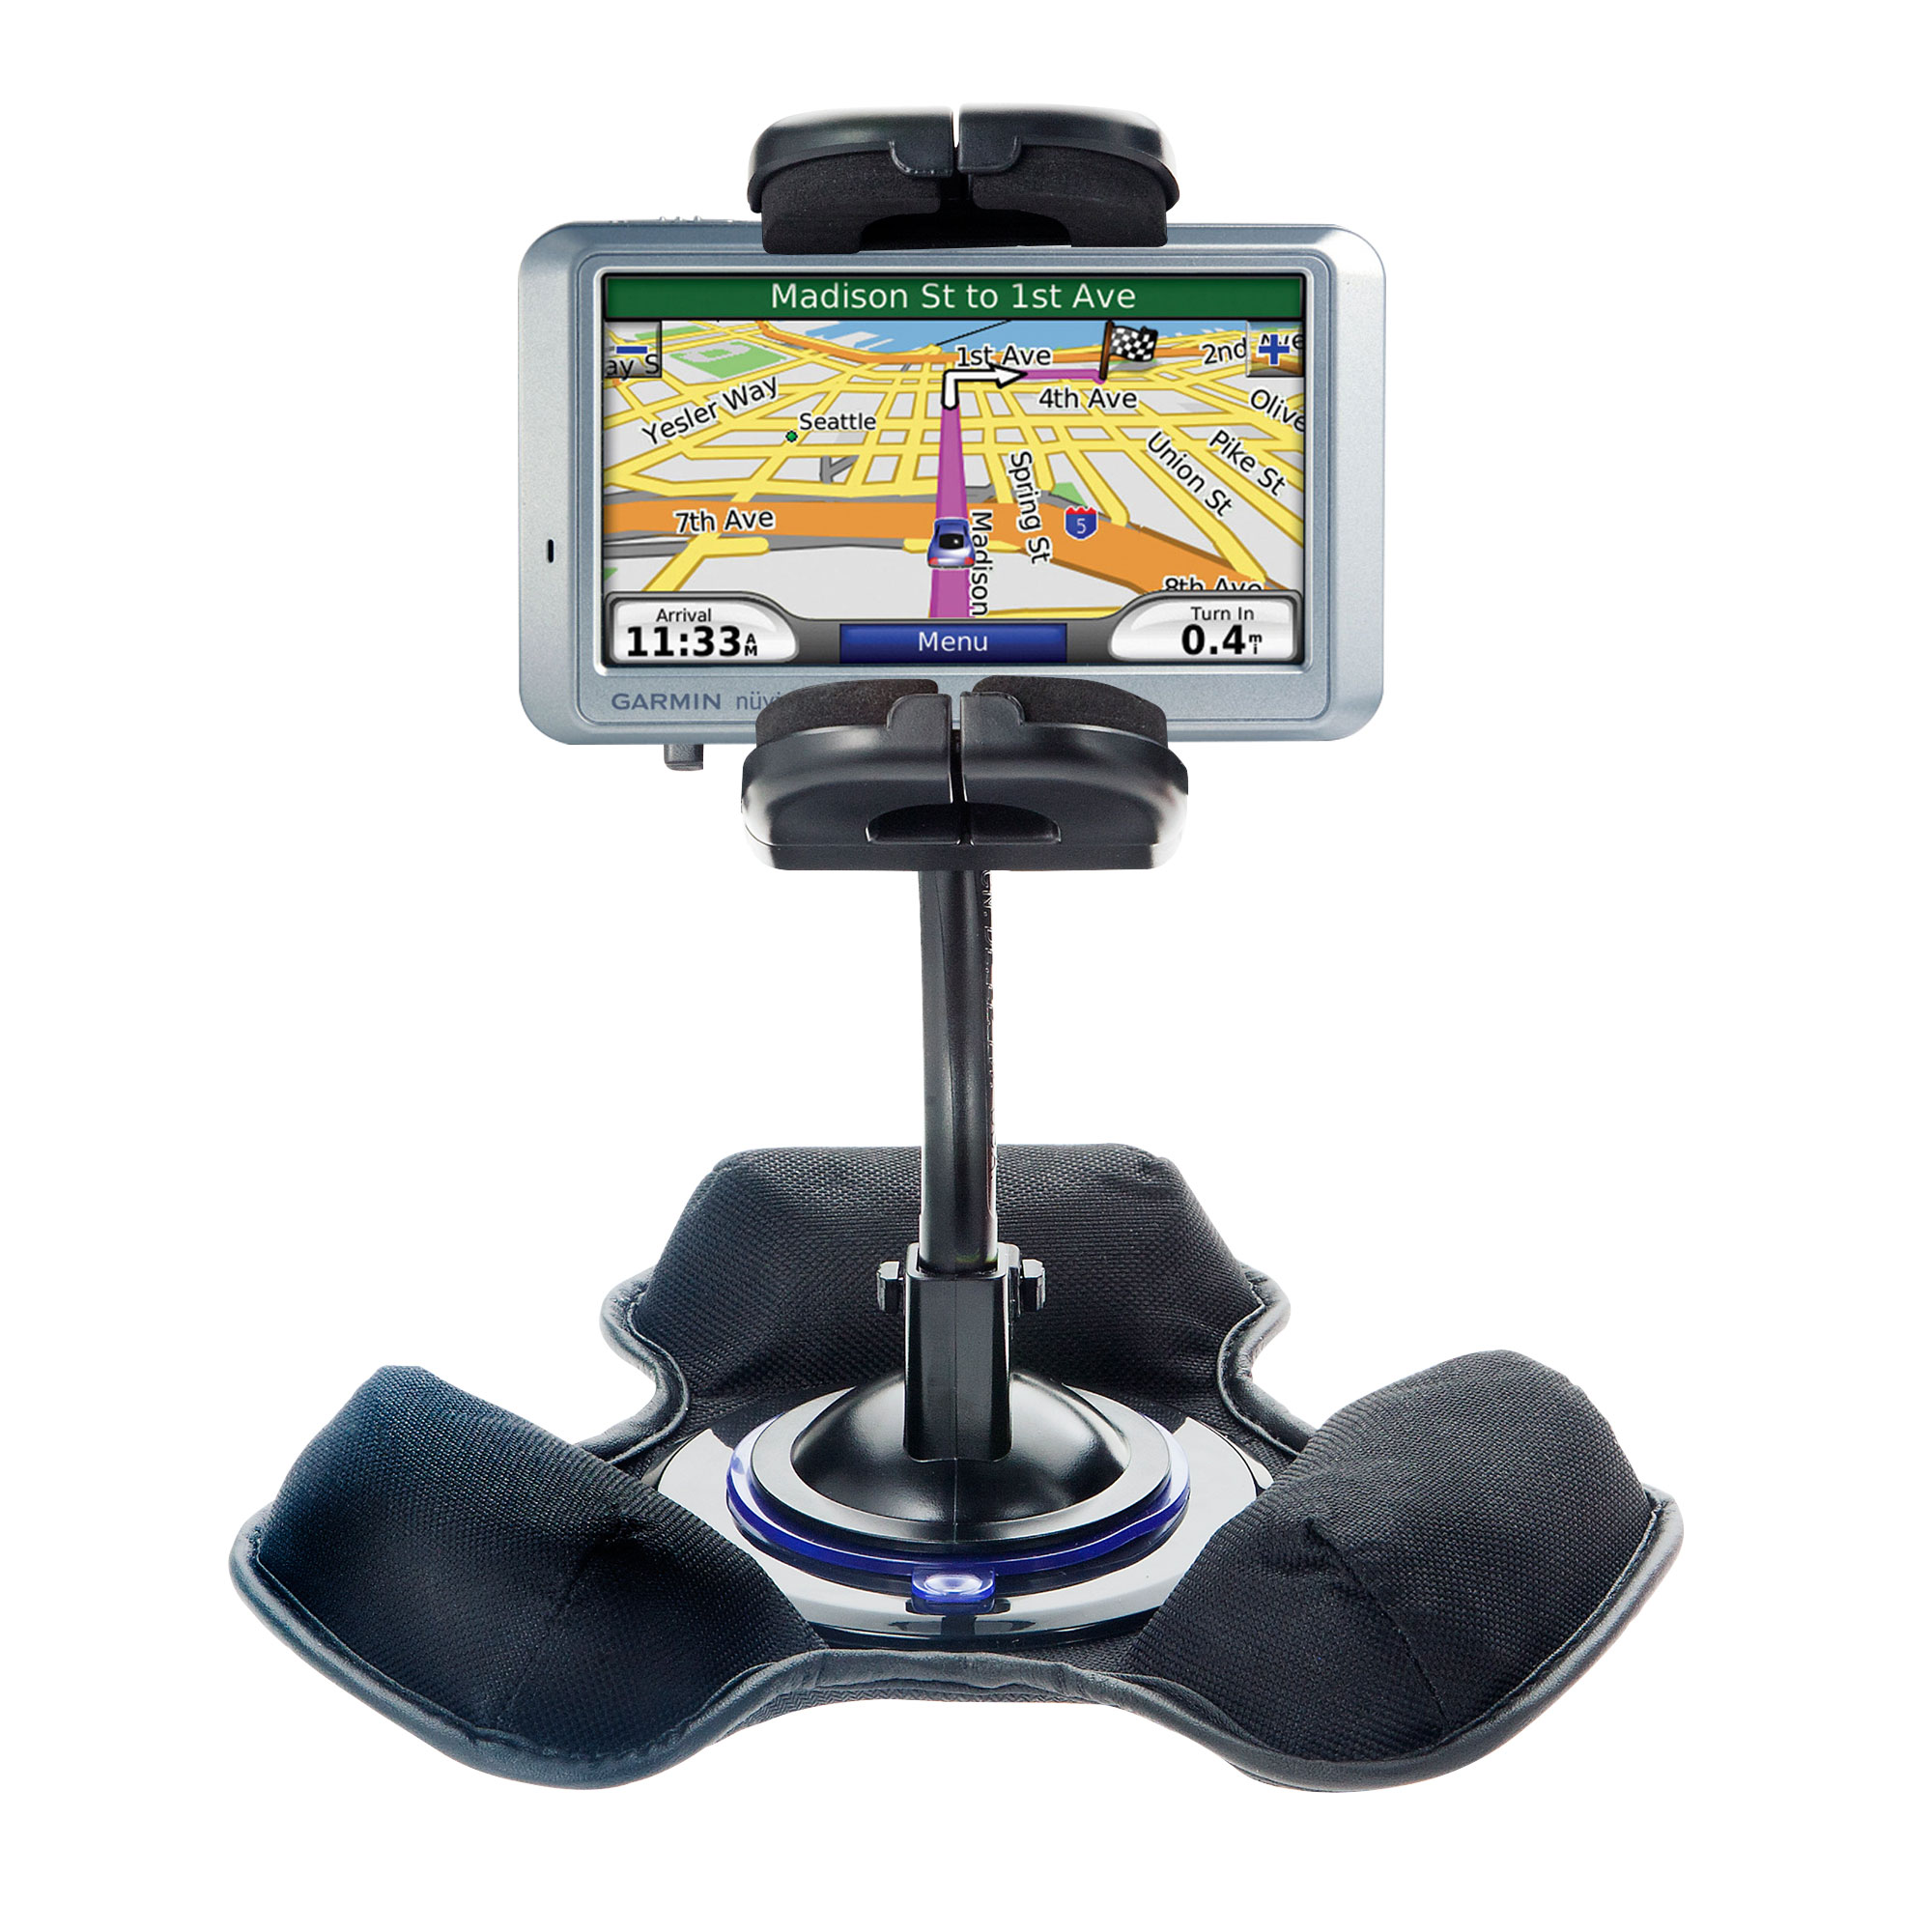 Dash and Windshield Holder compatible with the Garmin Nuvi 750